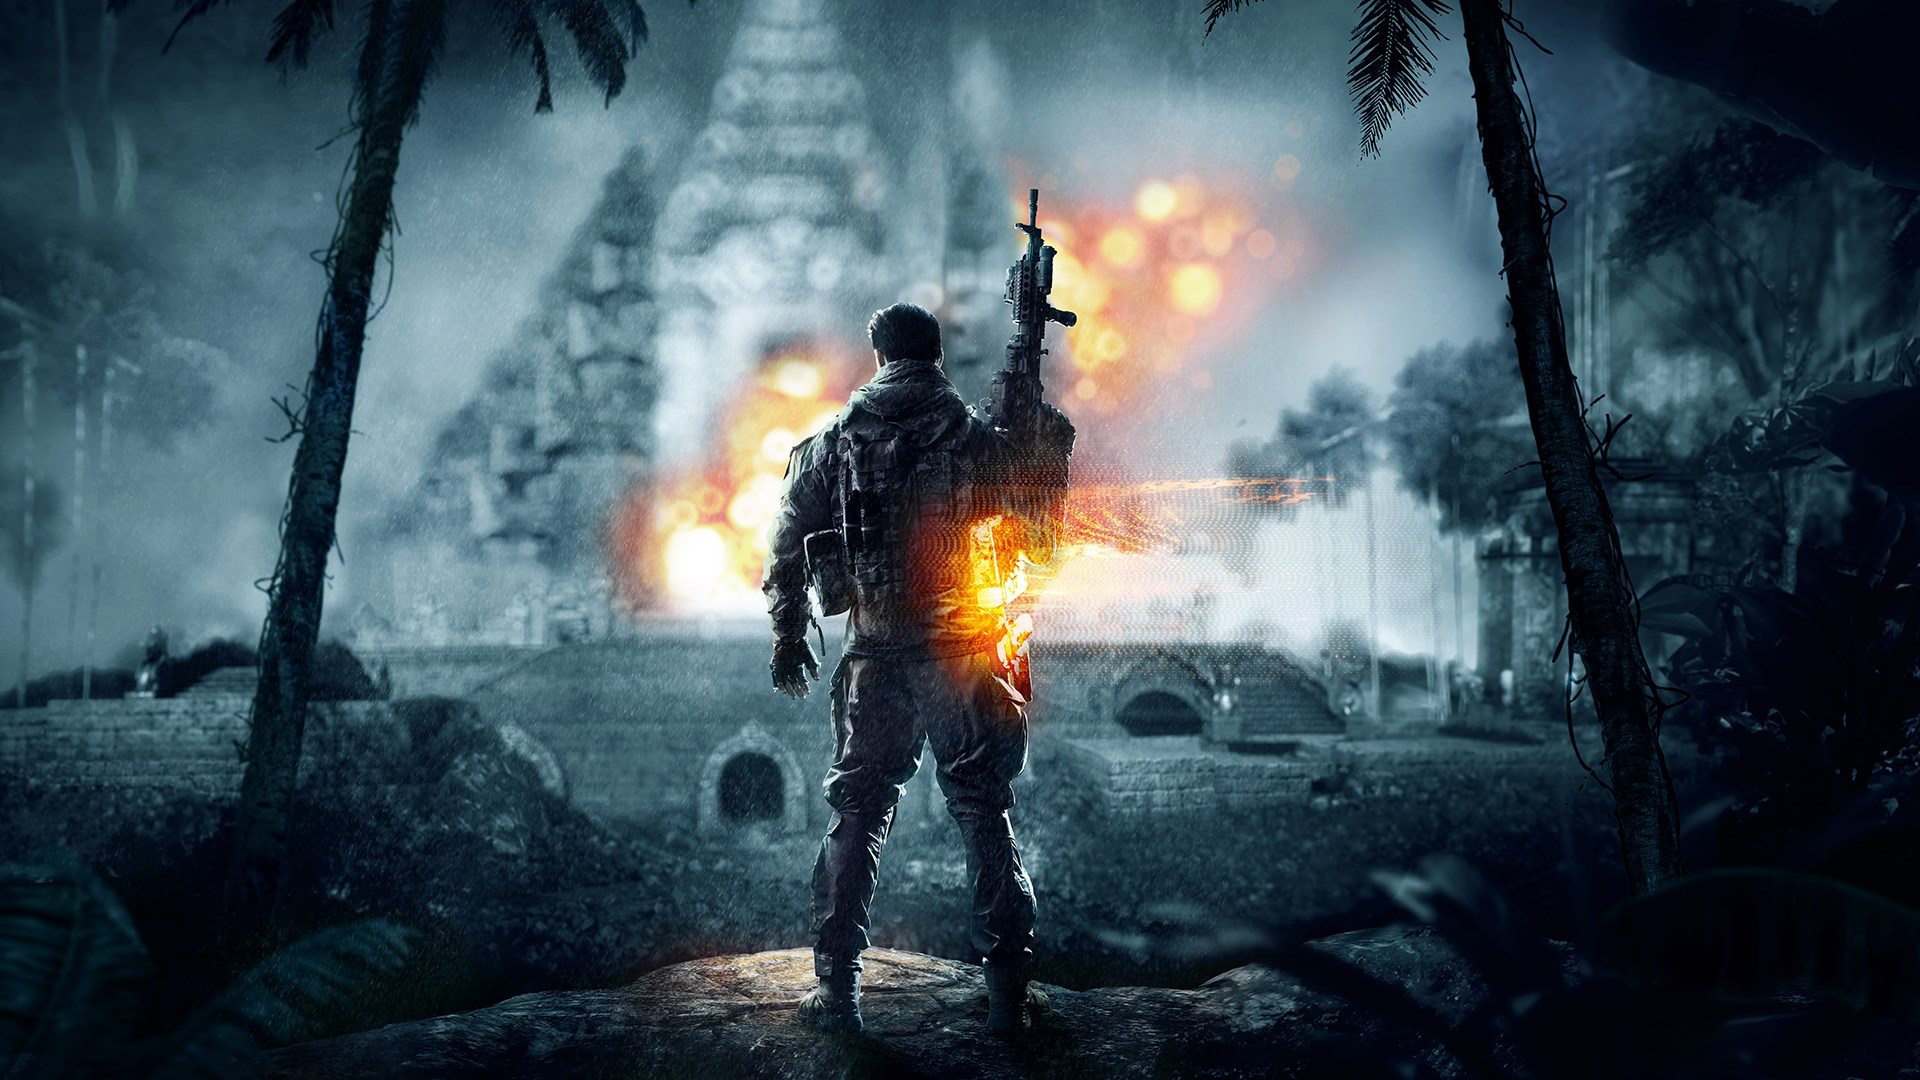 Battlefield 4 leaked survey hints at DLC and Dinosaurs, EA issues response